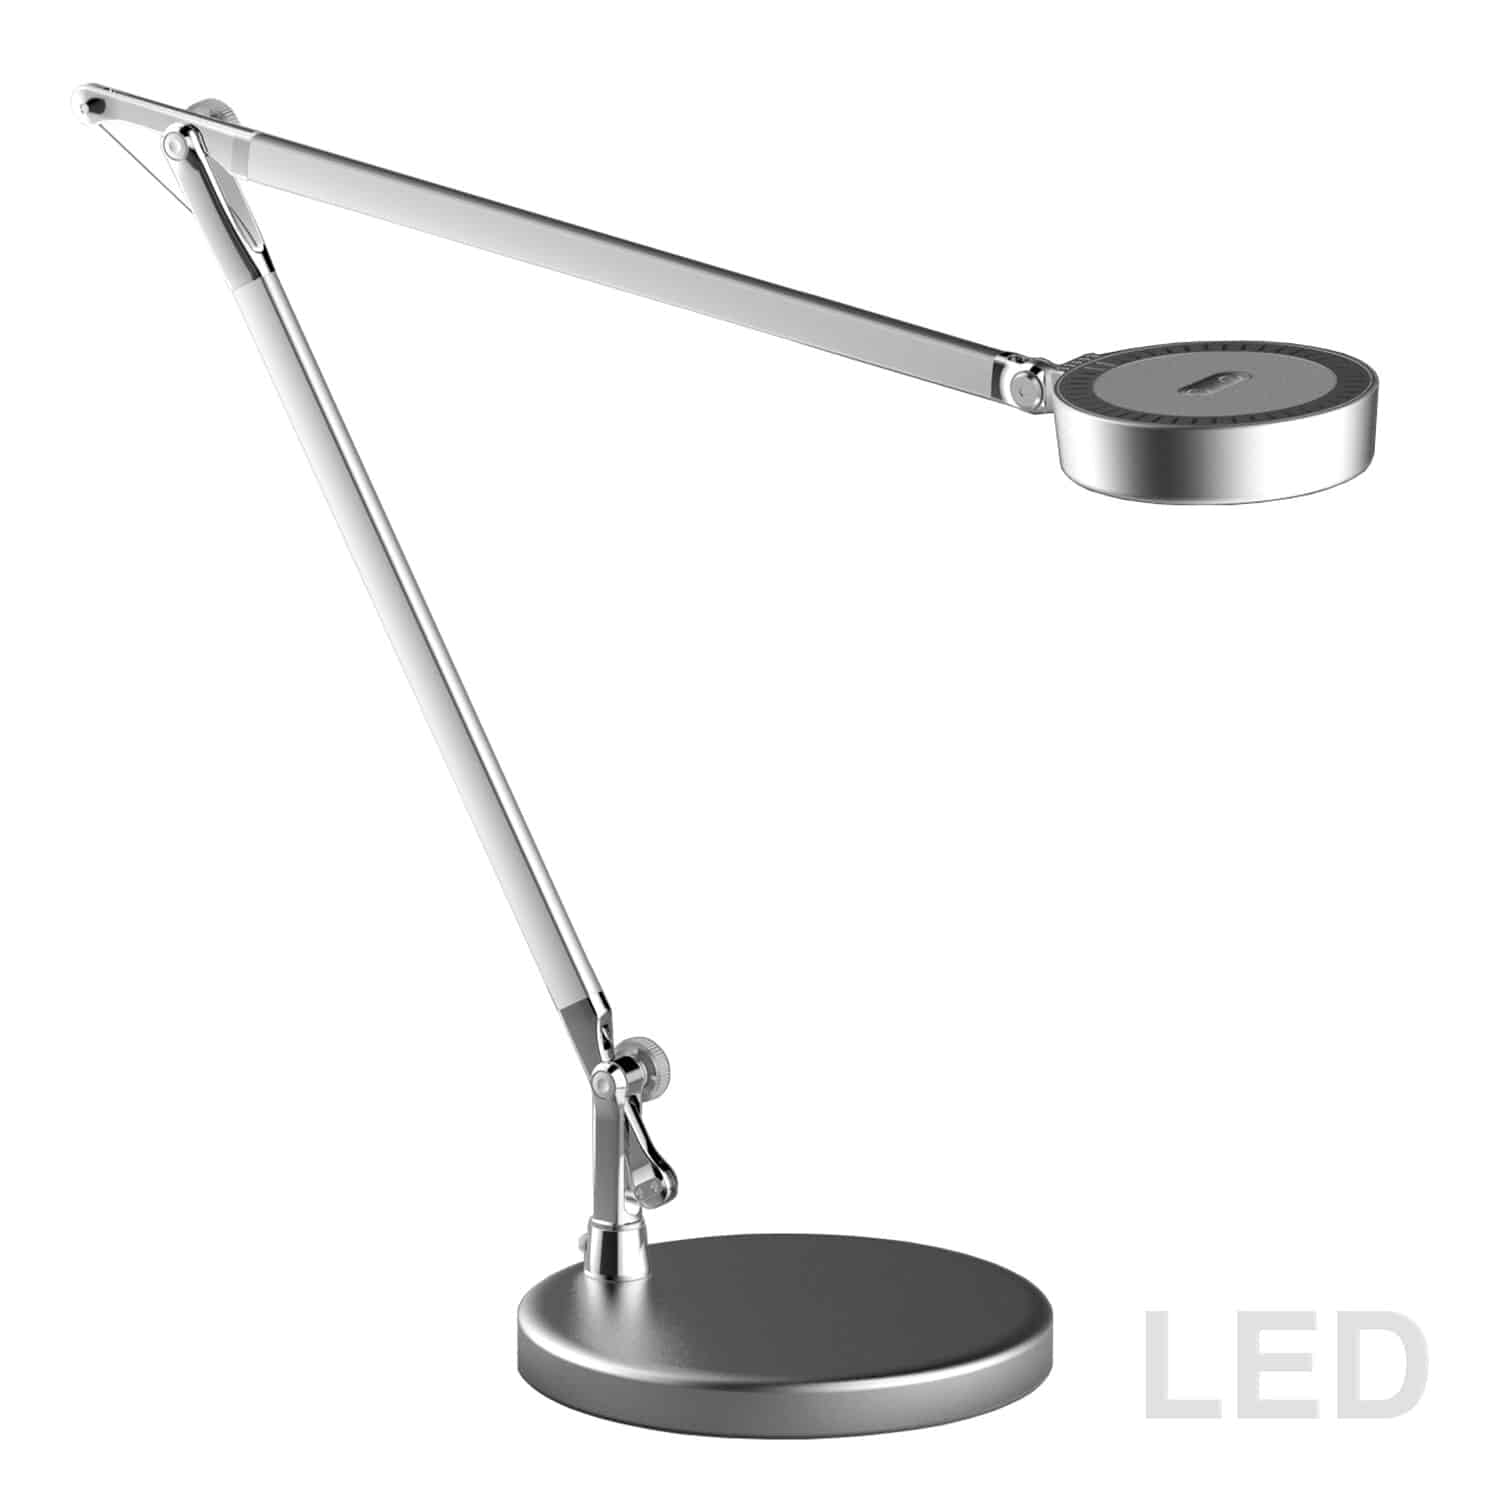 4.8W Adjustable LED Table Lamp, Silver Finish